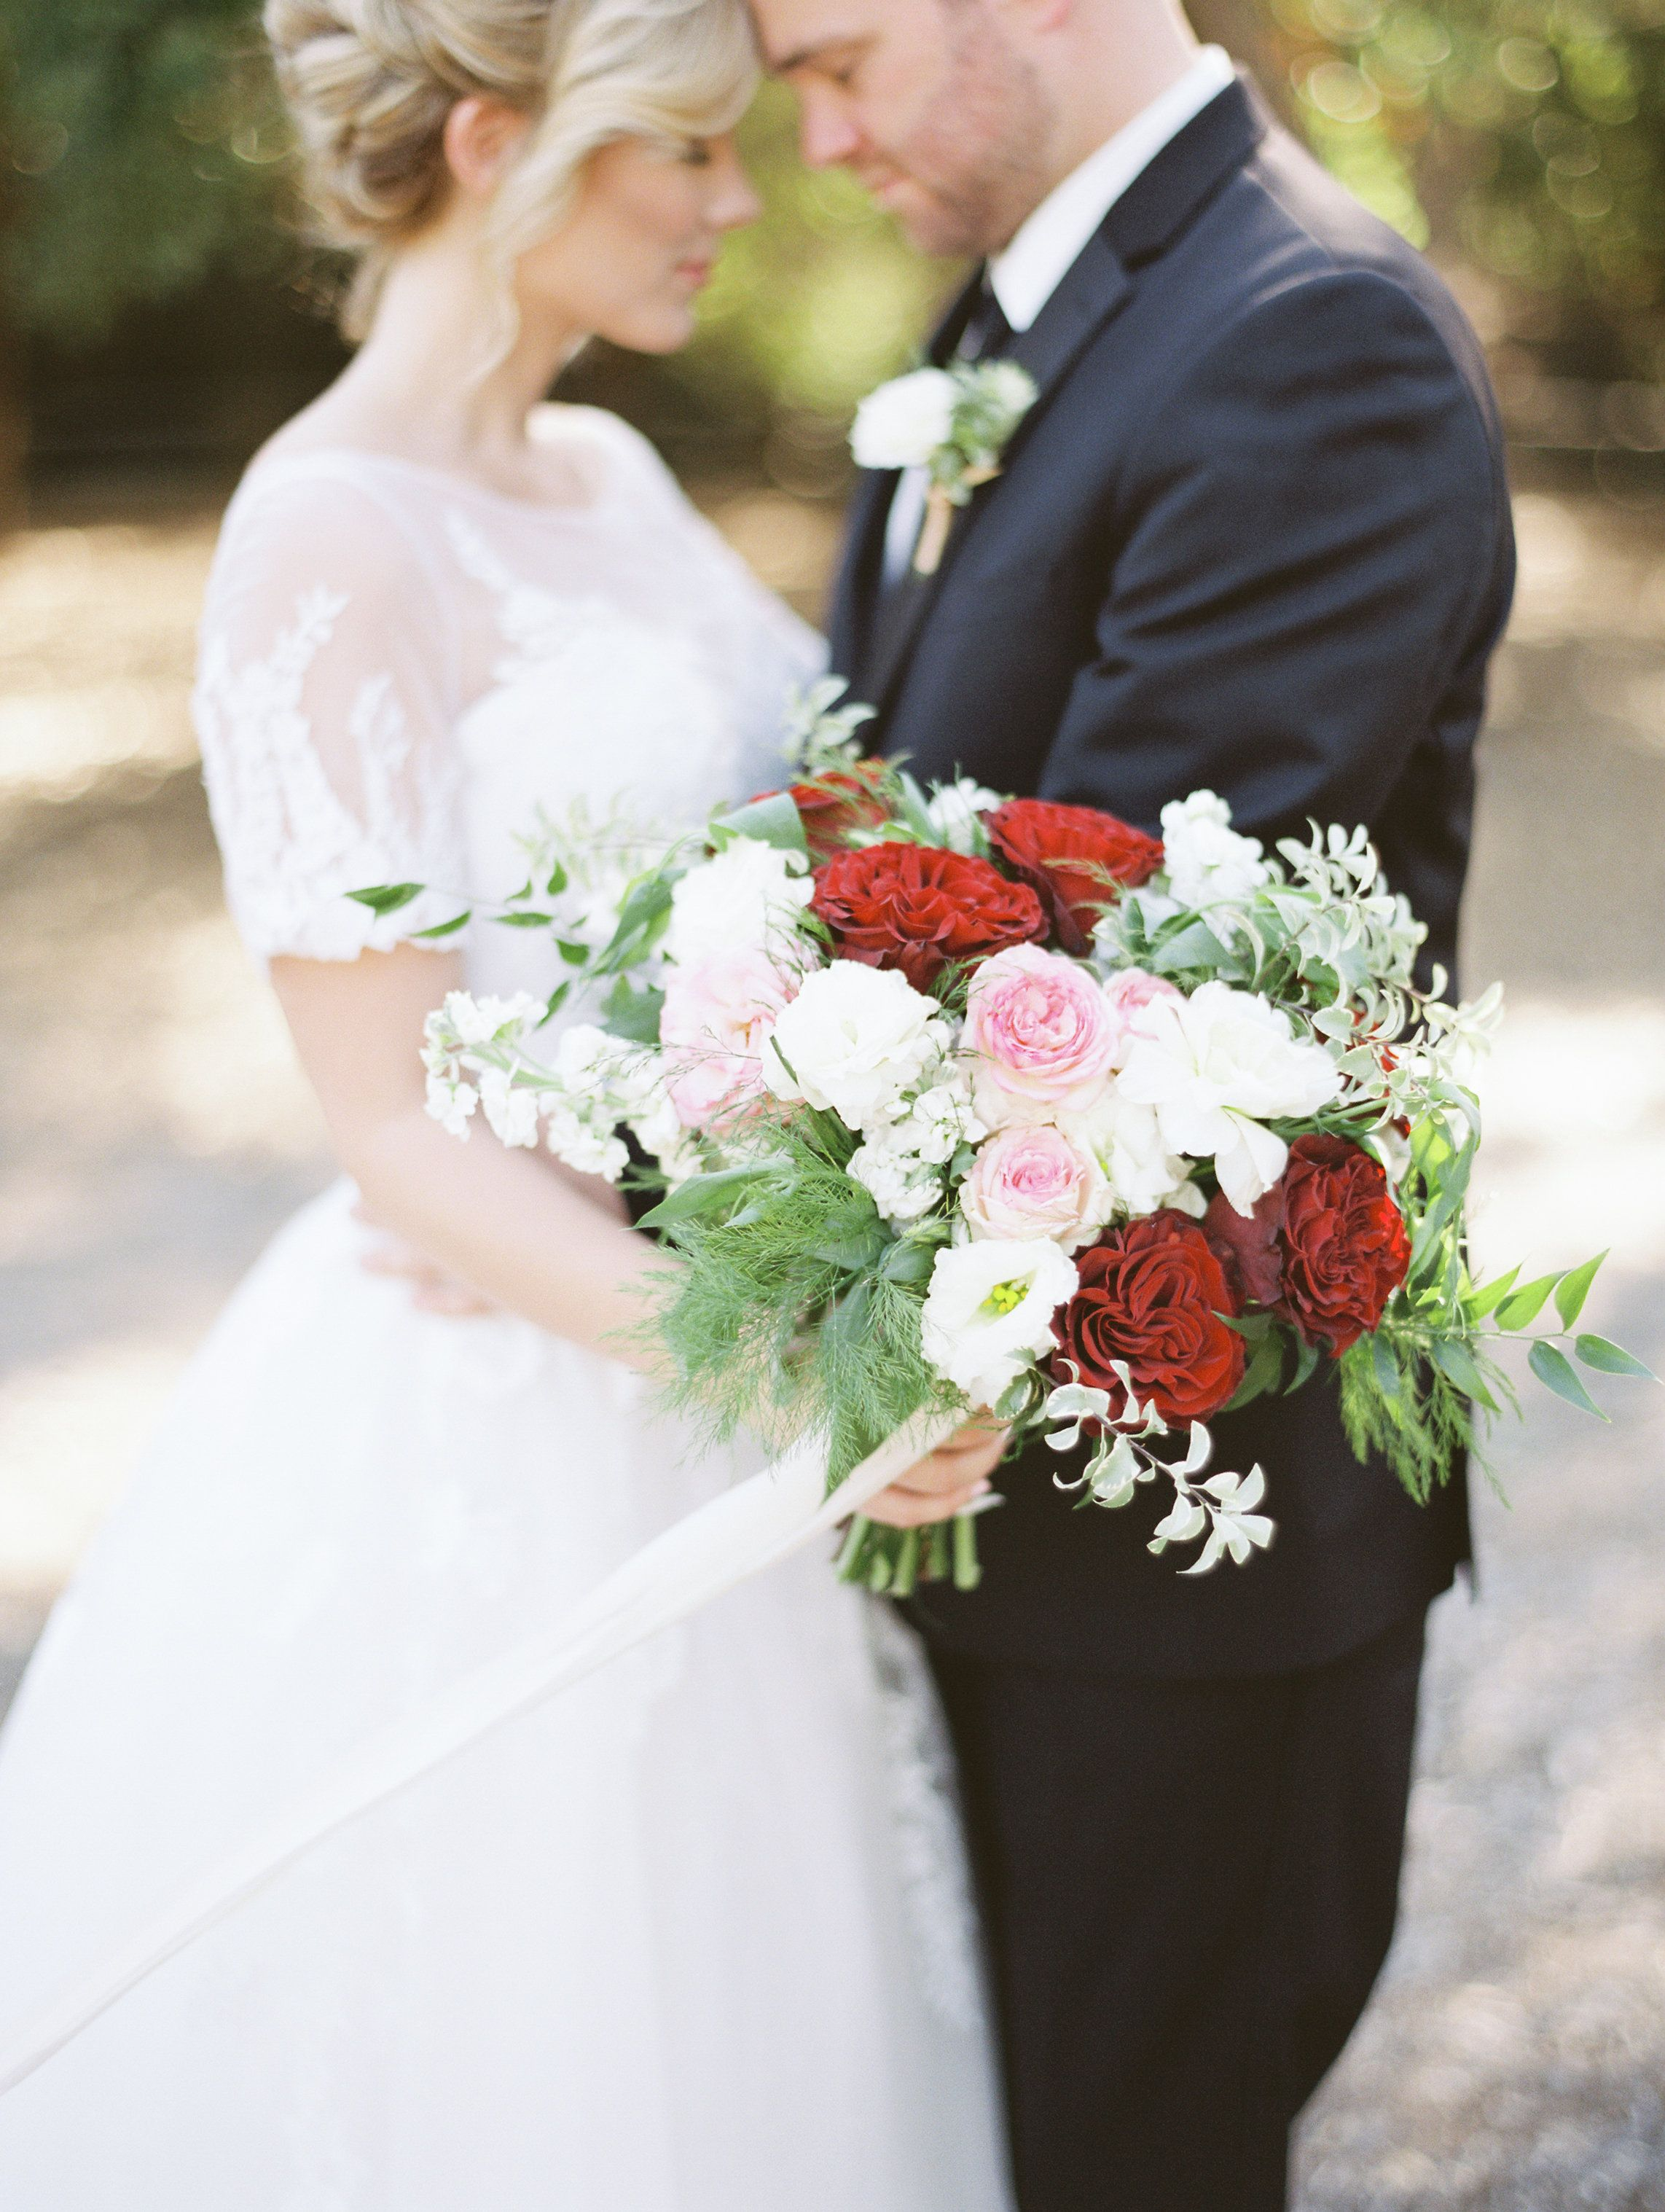 Blog of Mayesh Wholesale Florist - Interview with The Blooming Bud - bridal bouqet